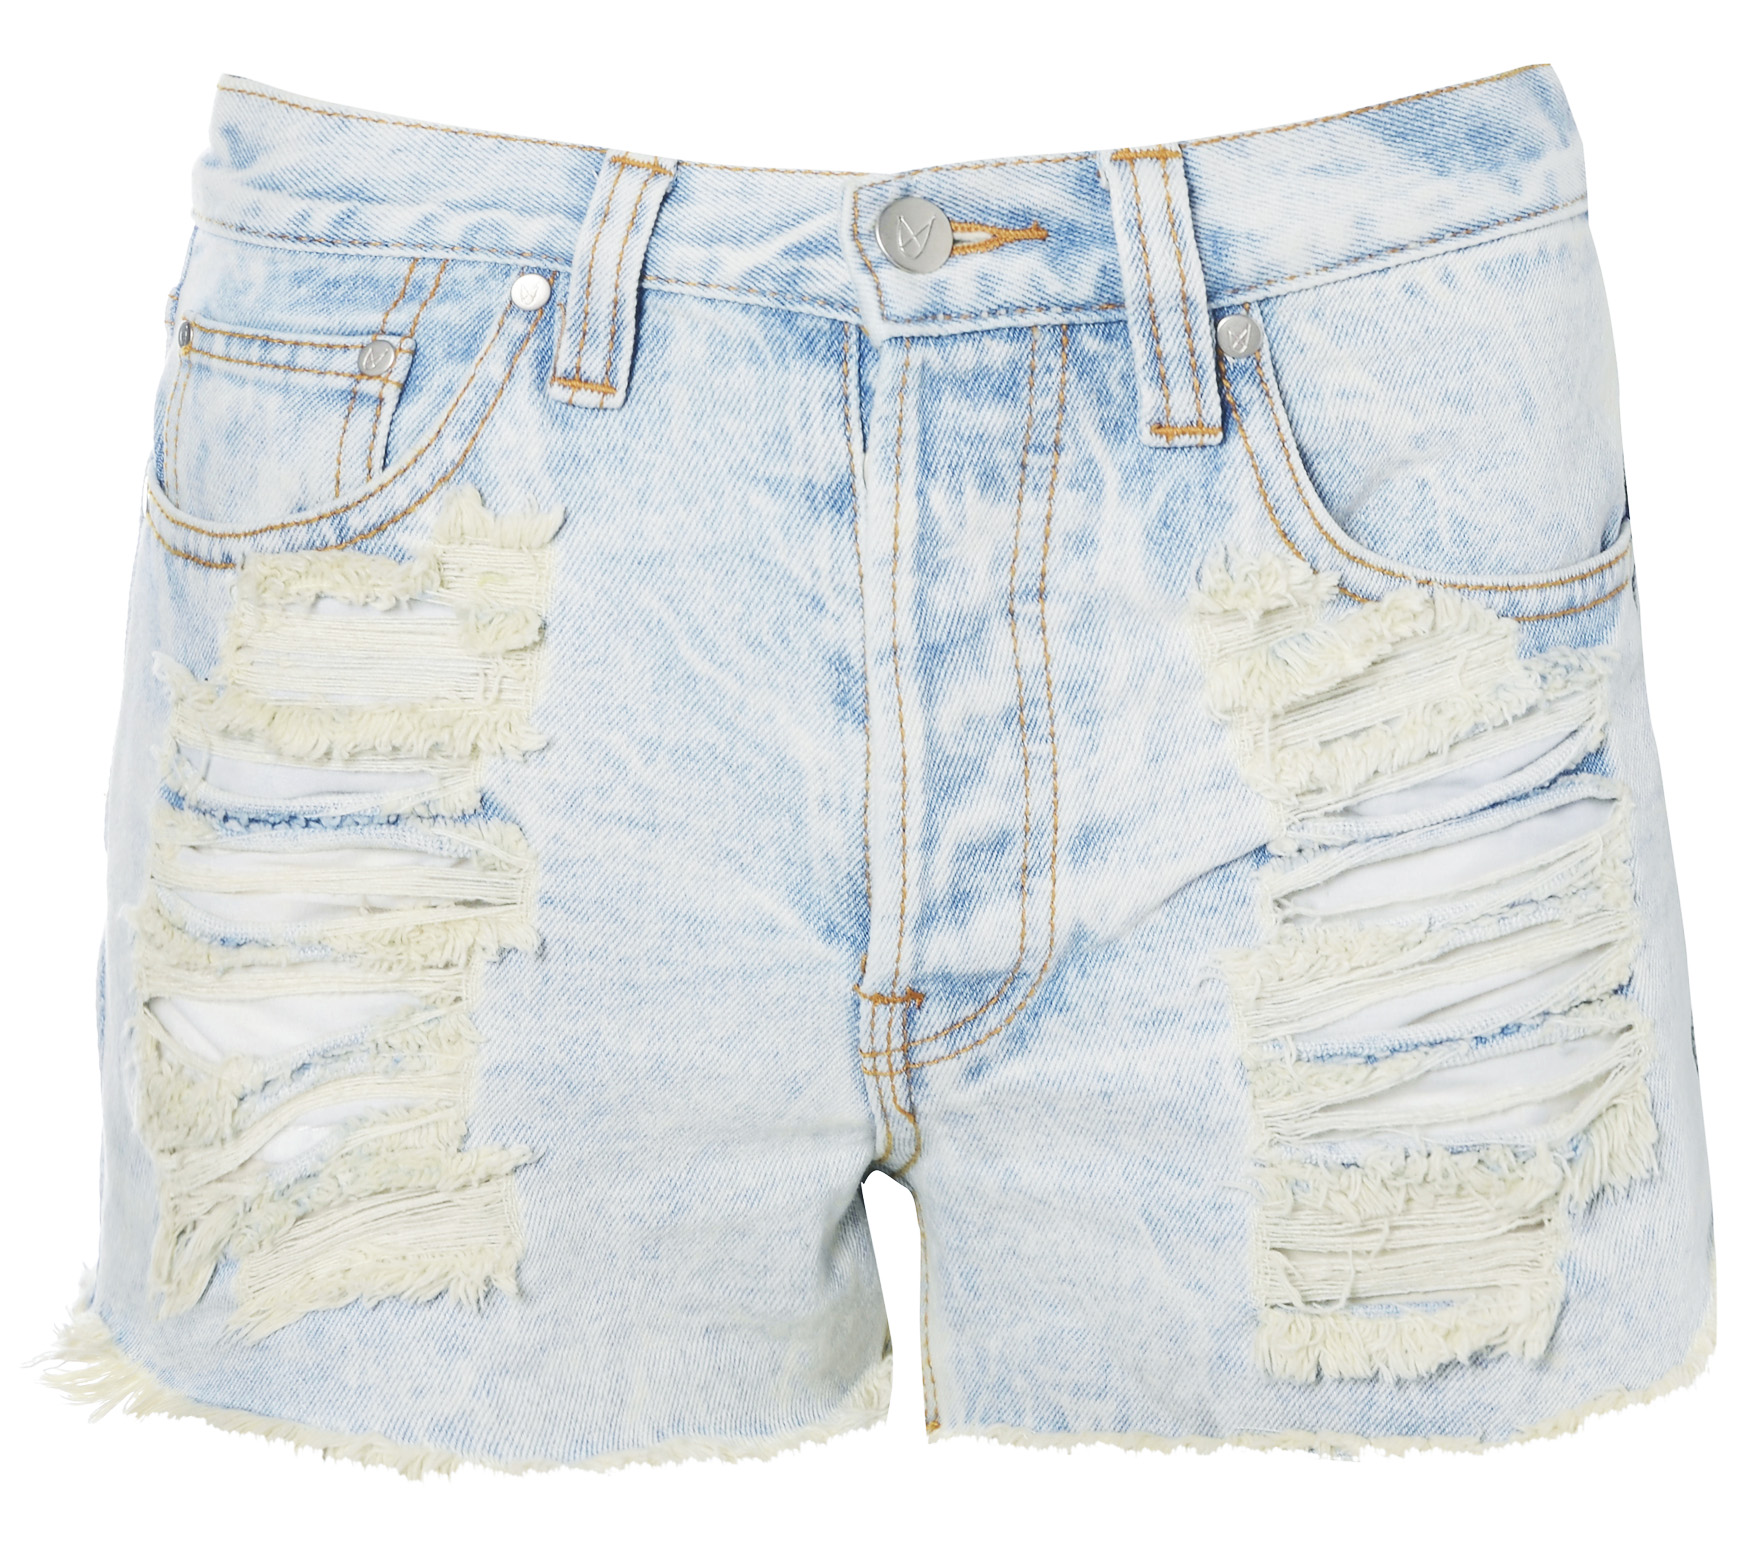 NEW-WOMENS-MINK-PINK-BLUE-ACID-BLEACH-WASH-DISTRESSED-DENIM-LADIES-SHORTS